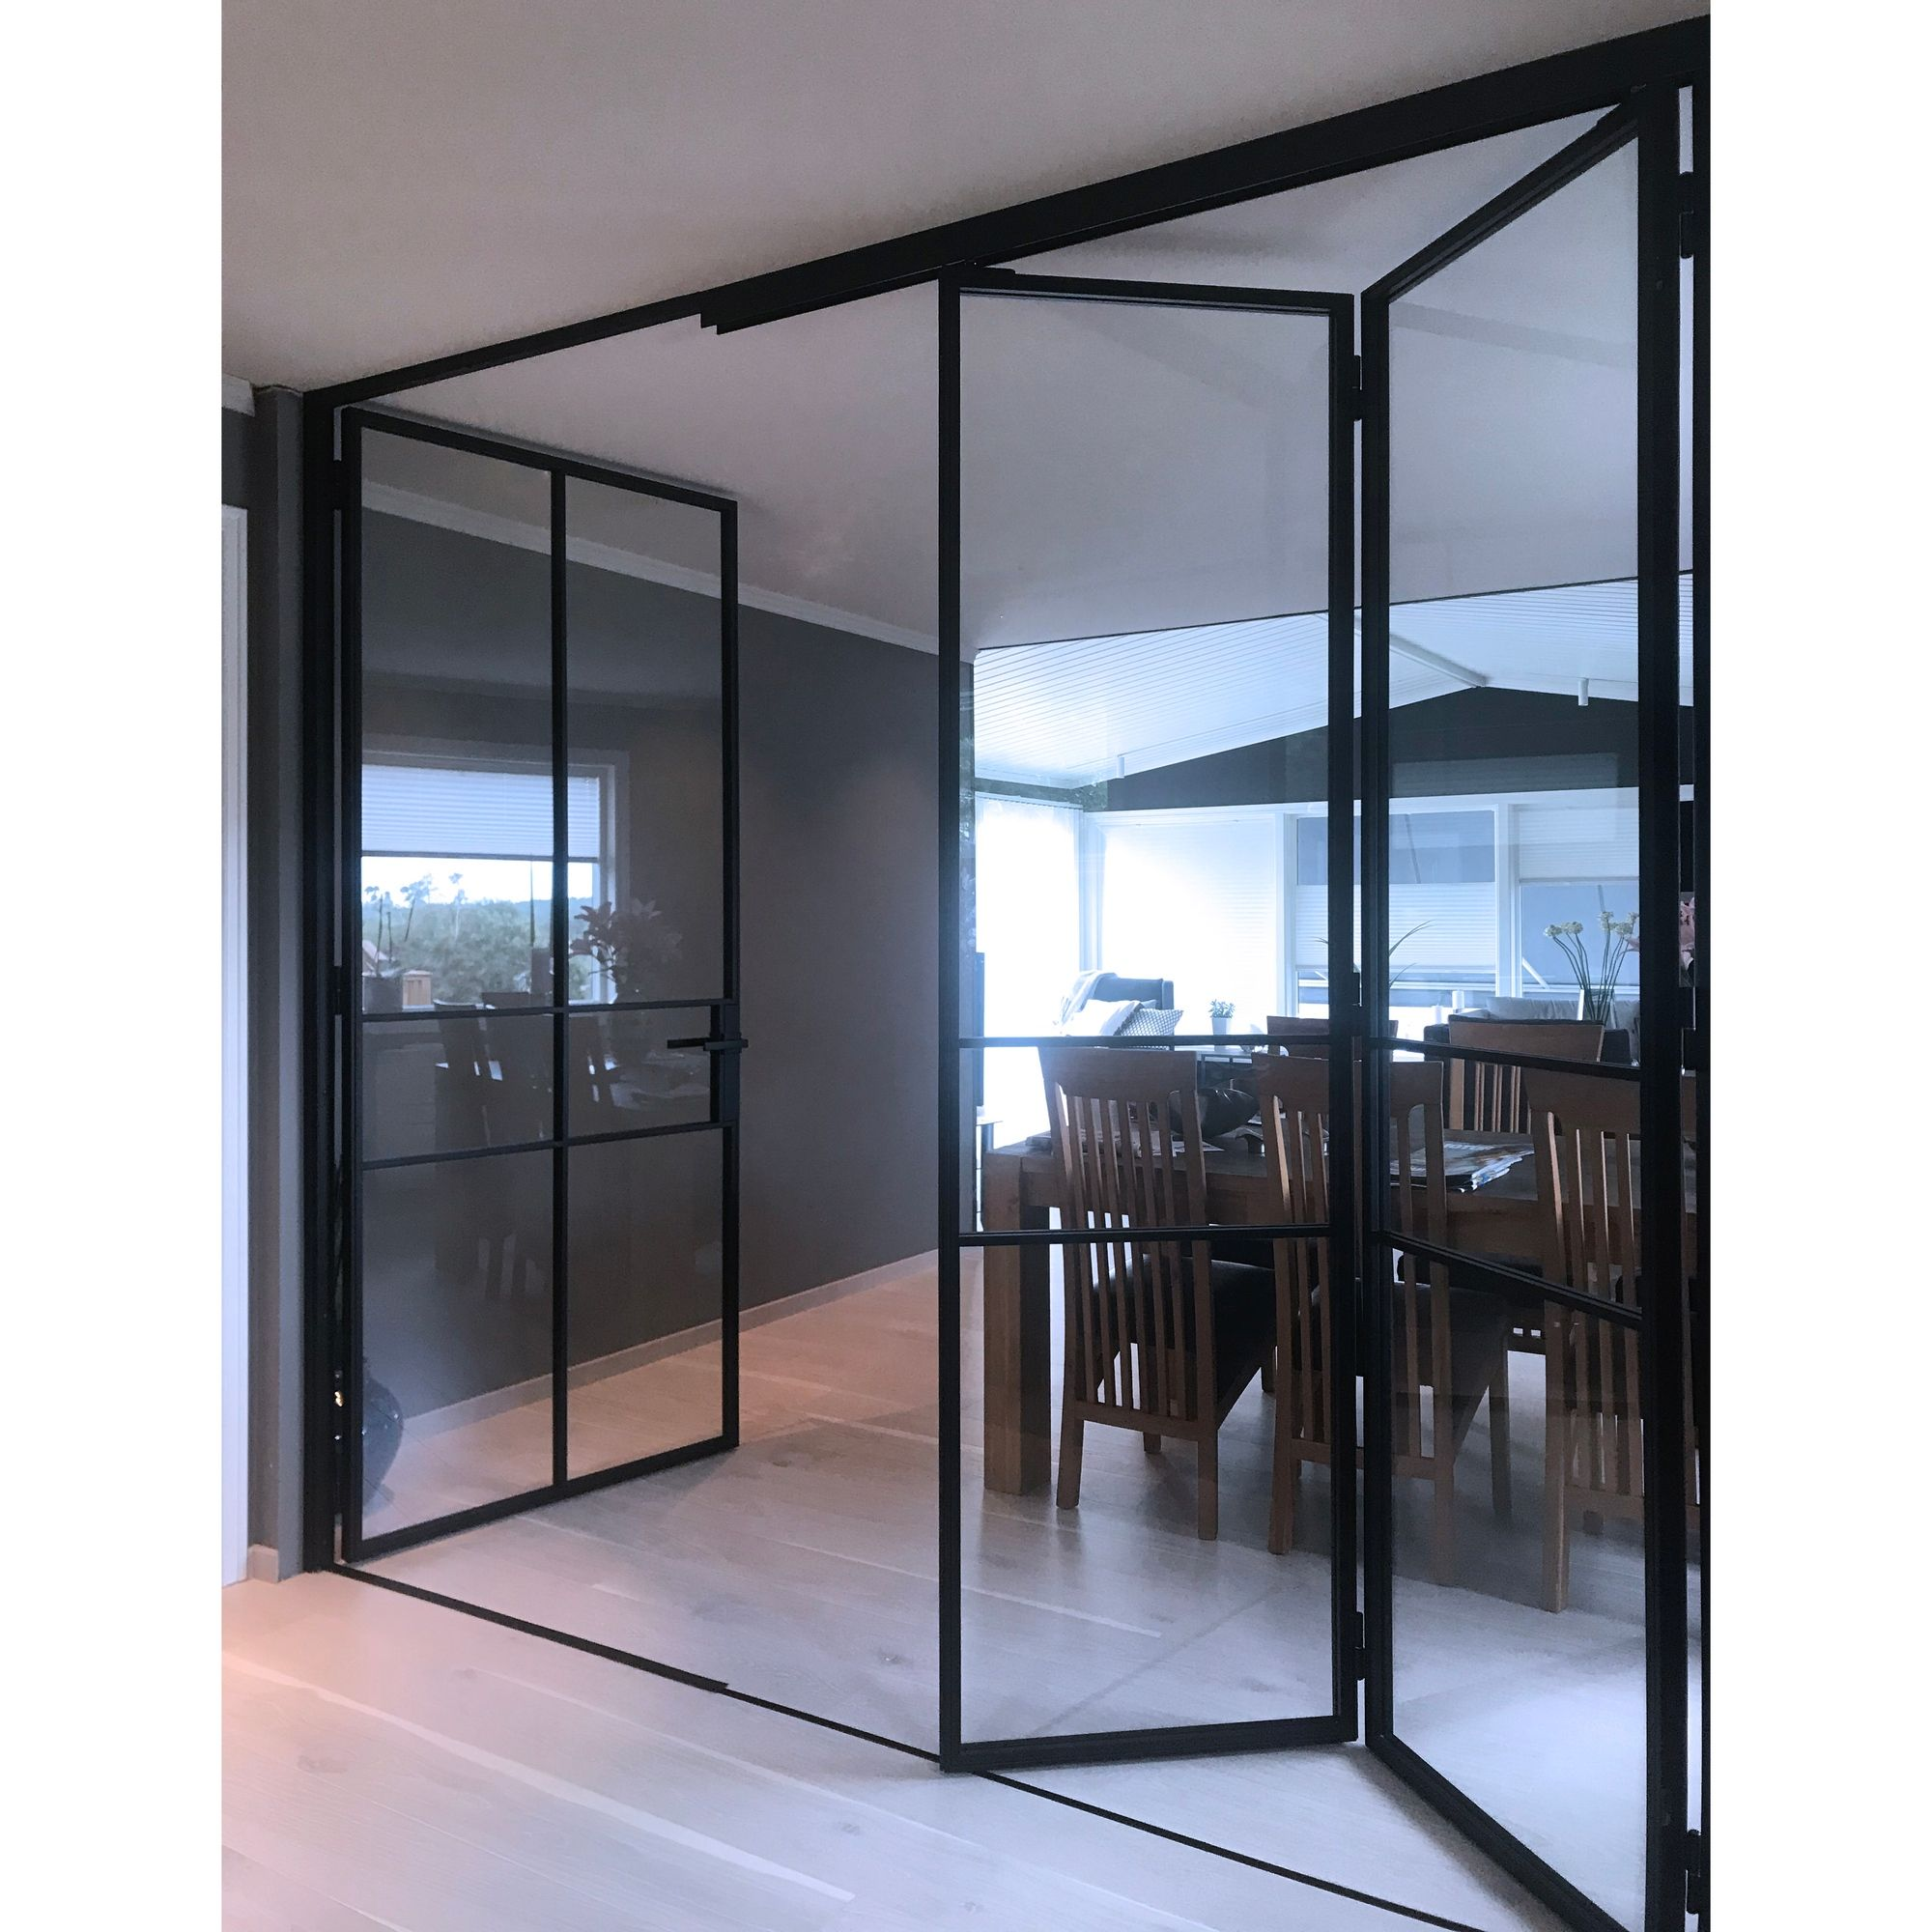 Our beautifully innovative bi-folding doors afford clients t…